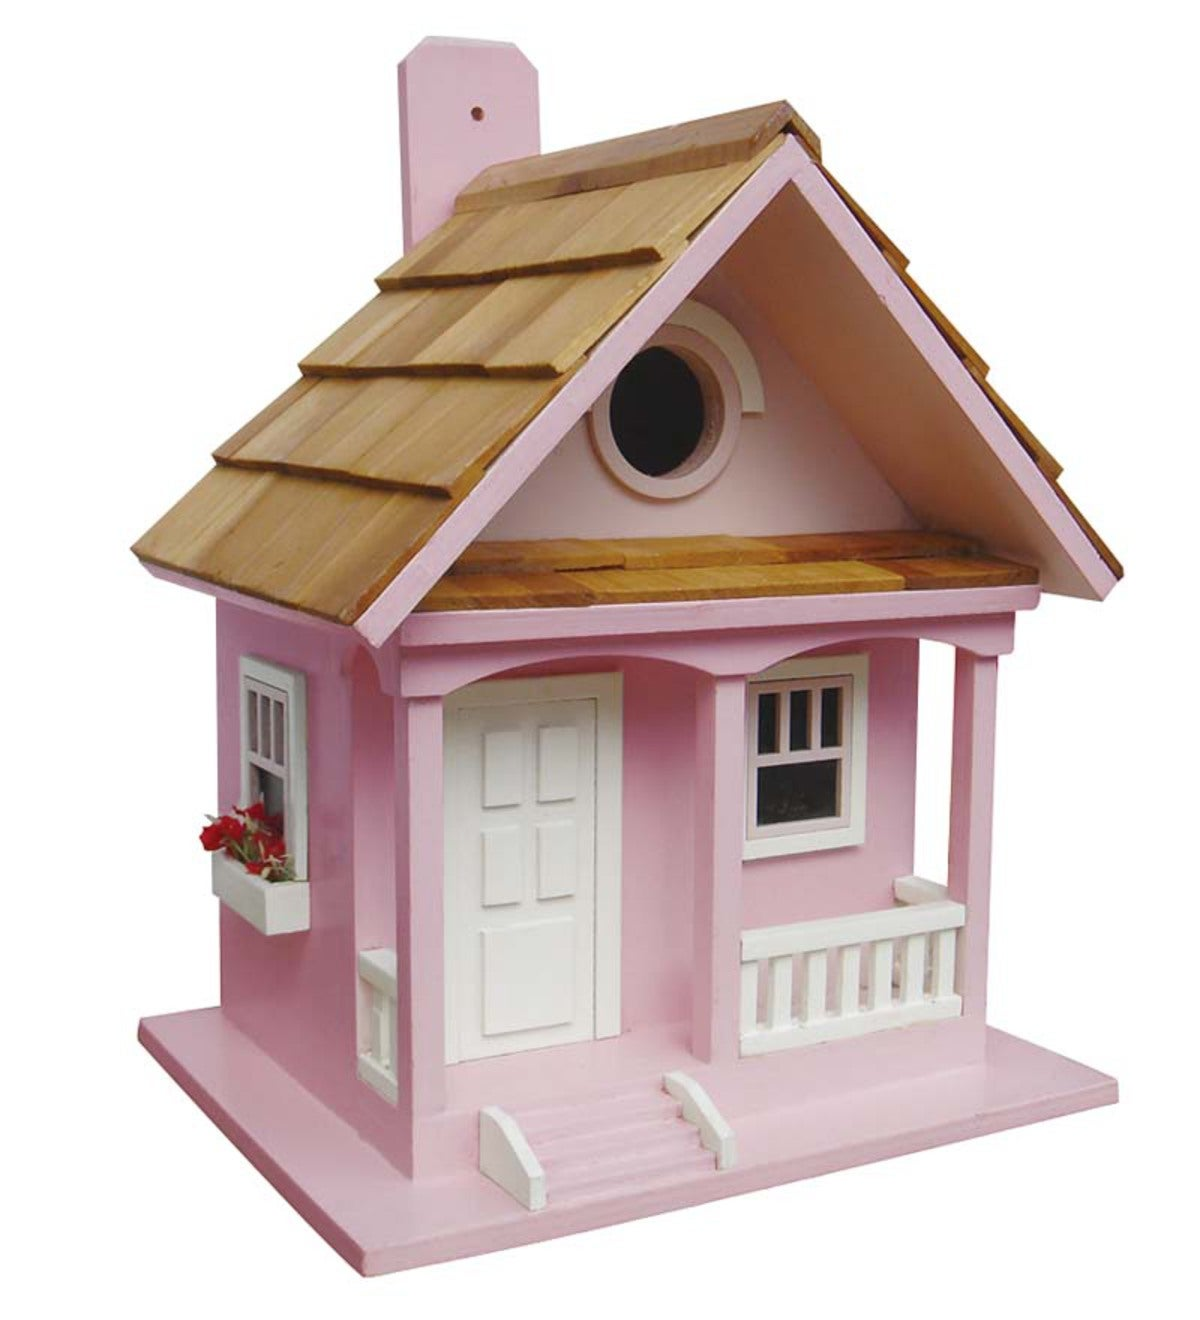 Wood Cottage Birdhouse with Flowerboxes - Cotton Candy Pink